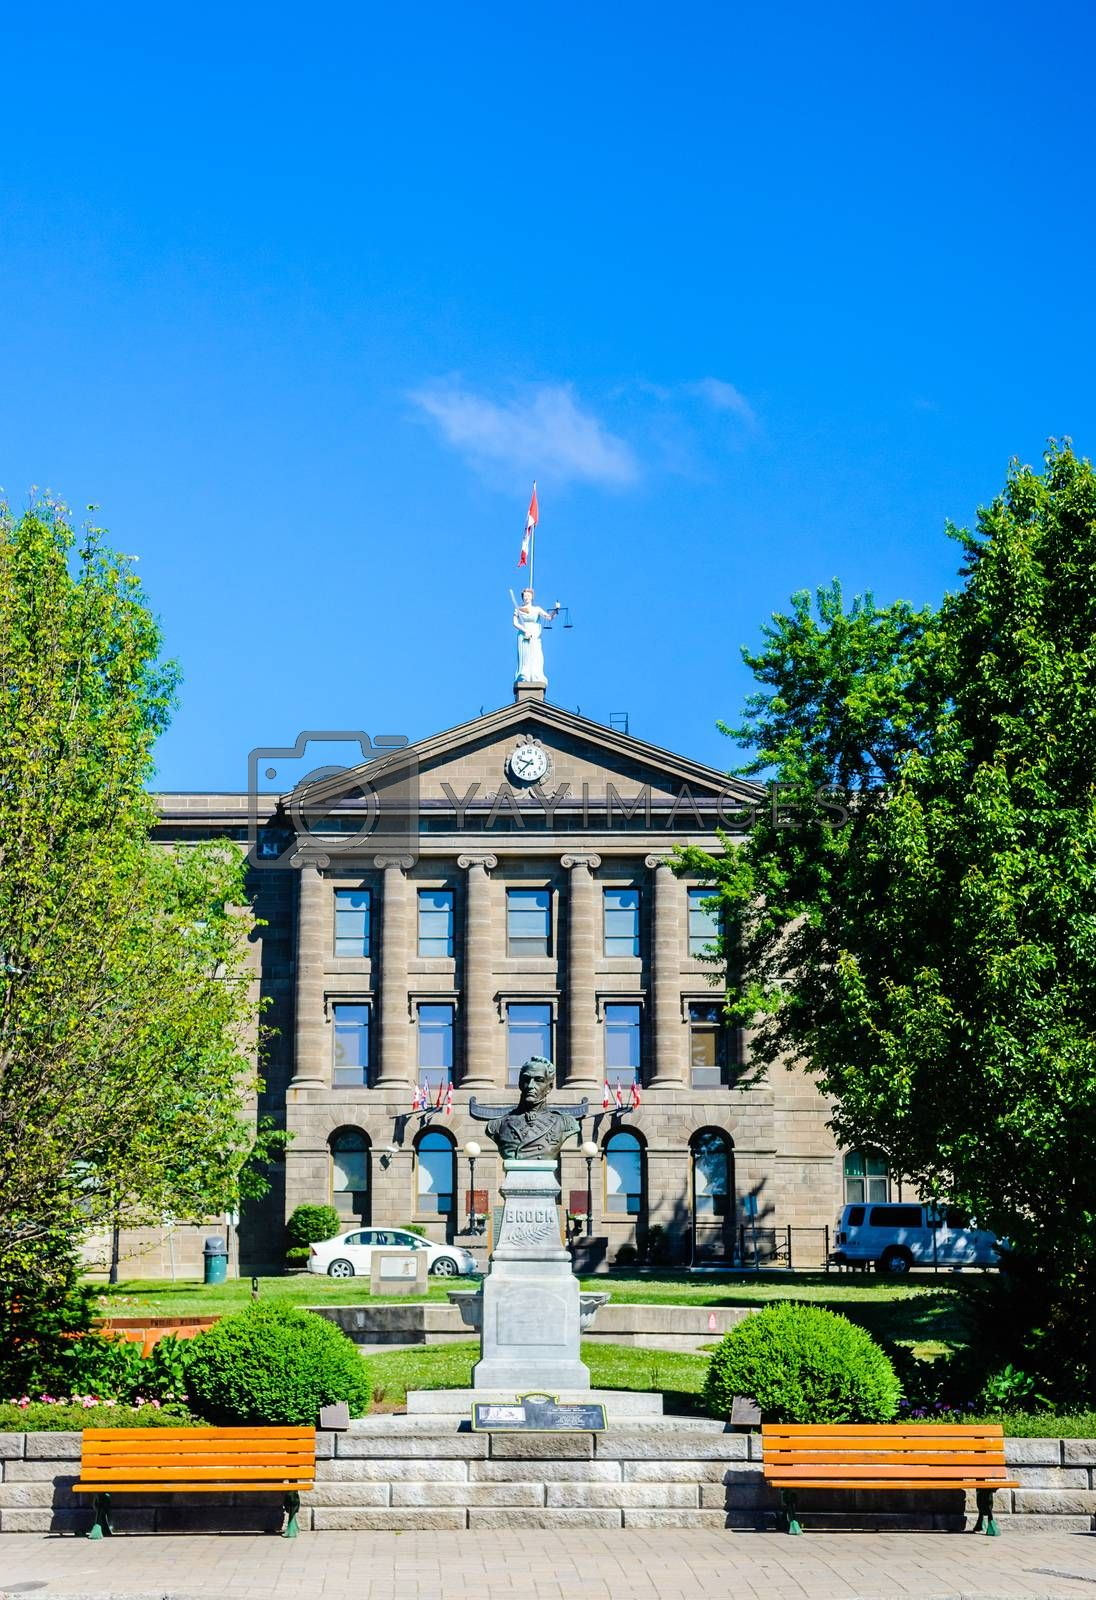 BROCKVILLE, ONTARIO, CANADA - JUNE 19, 2018: The county court house overlooks a monument of Sir Isaac Brock, and is a historic site.